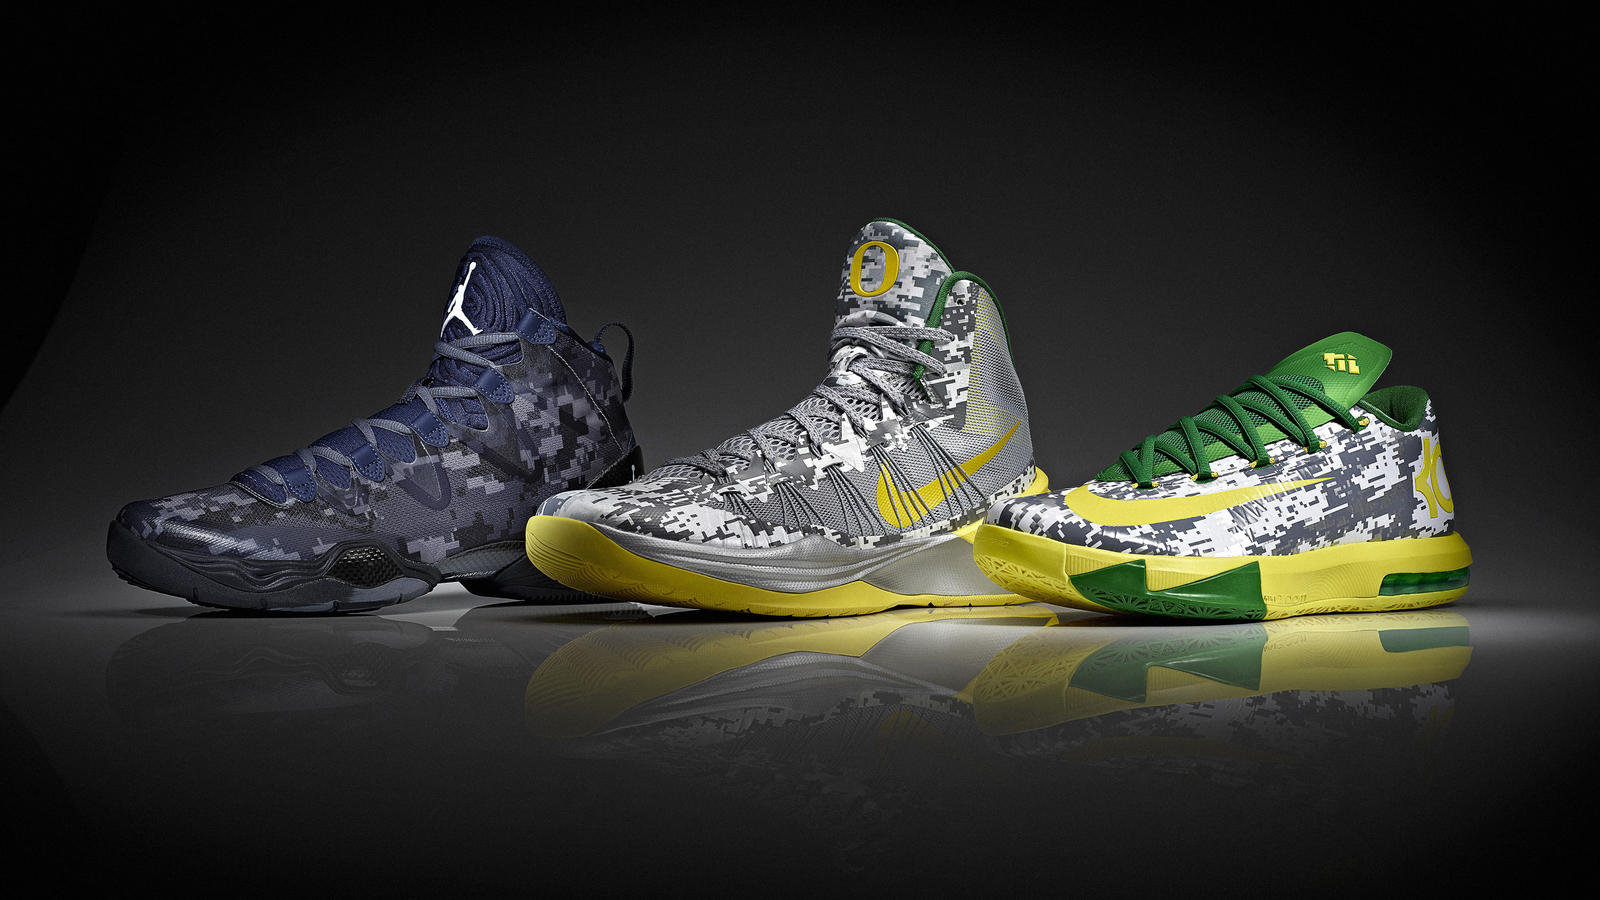 Oregon and Georgetown Footwear Options for Armed Forces Classic